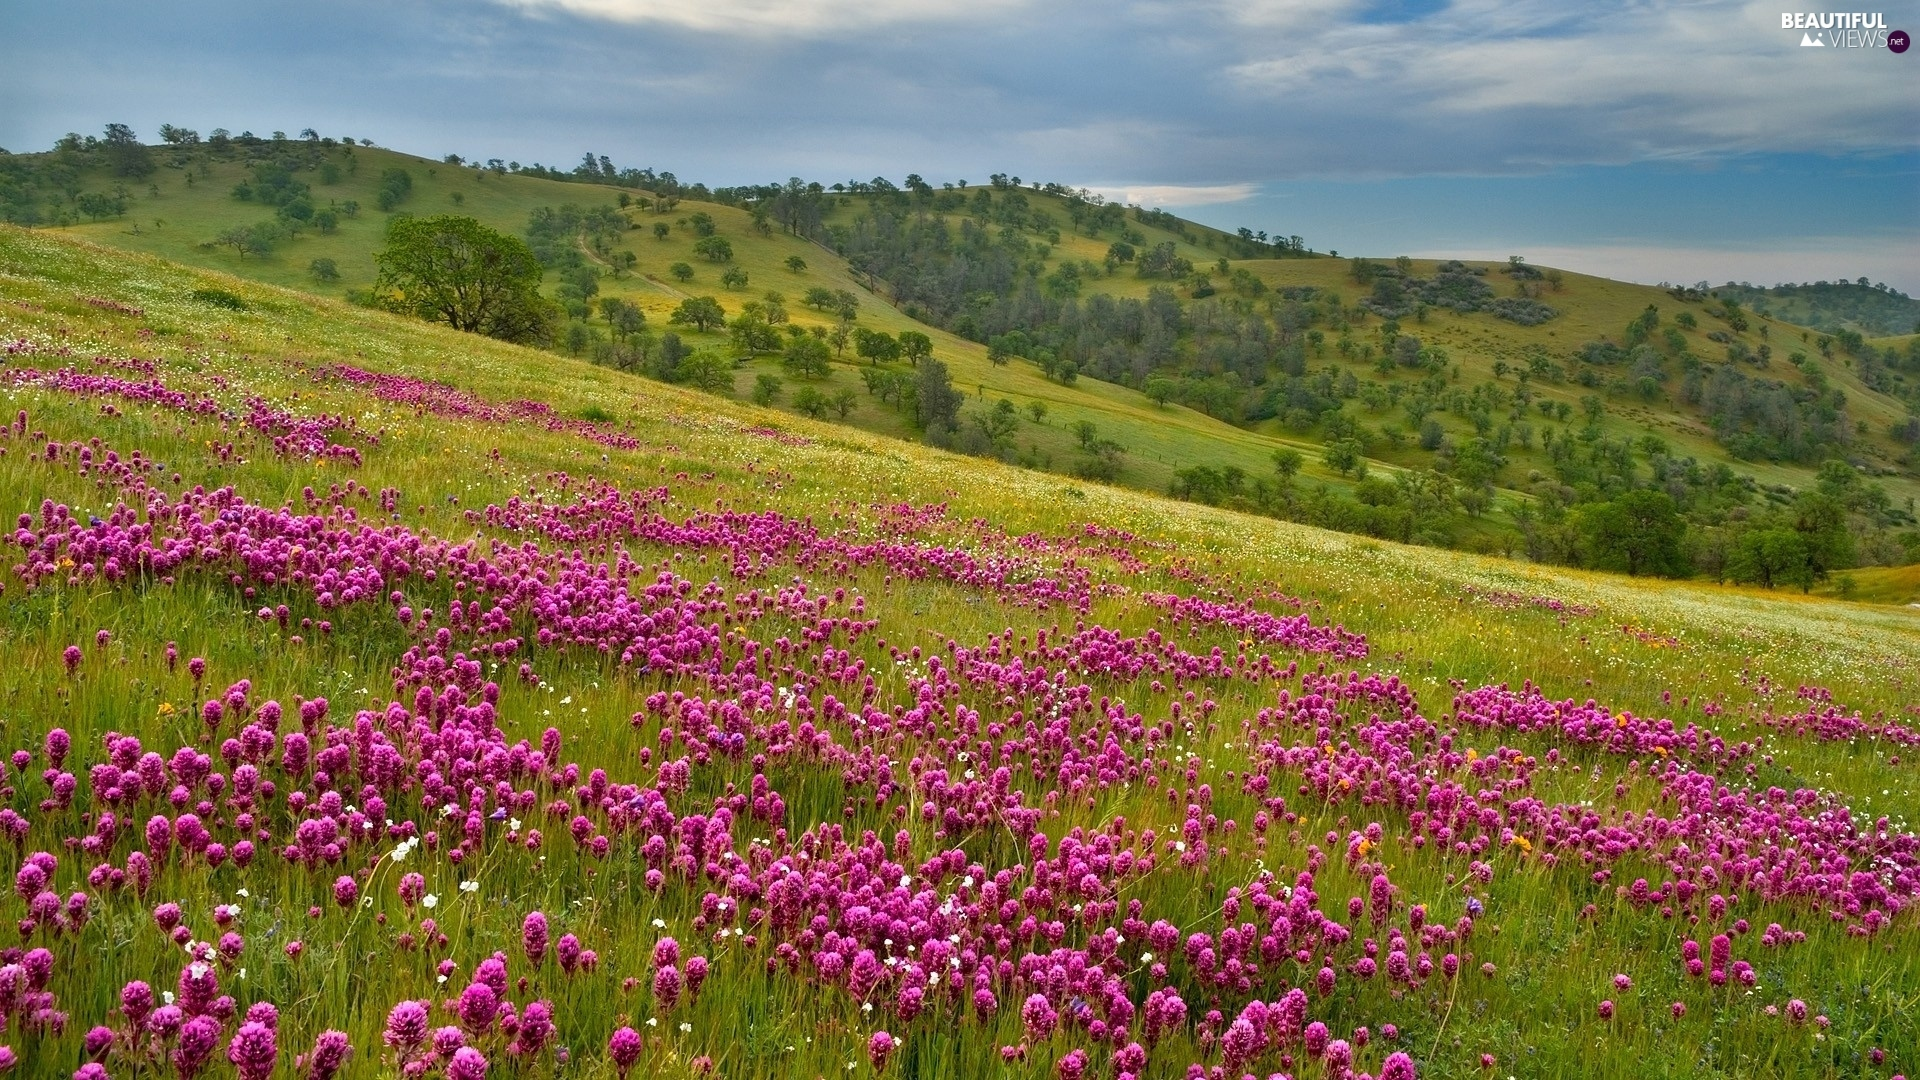 trees, mountains, Meadow, Flowers, viewes, slope